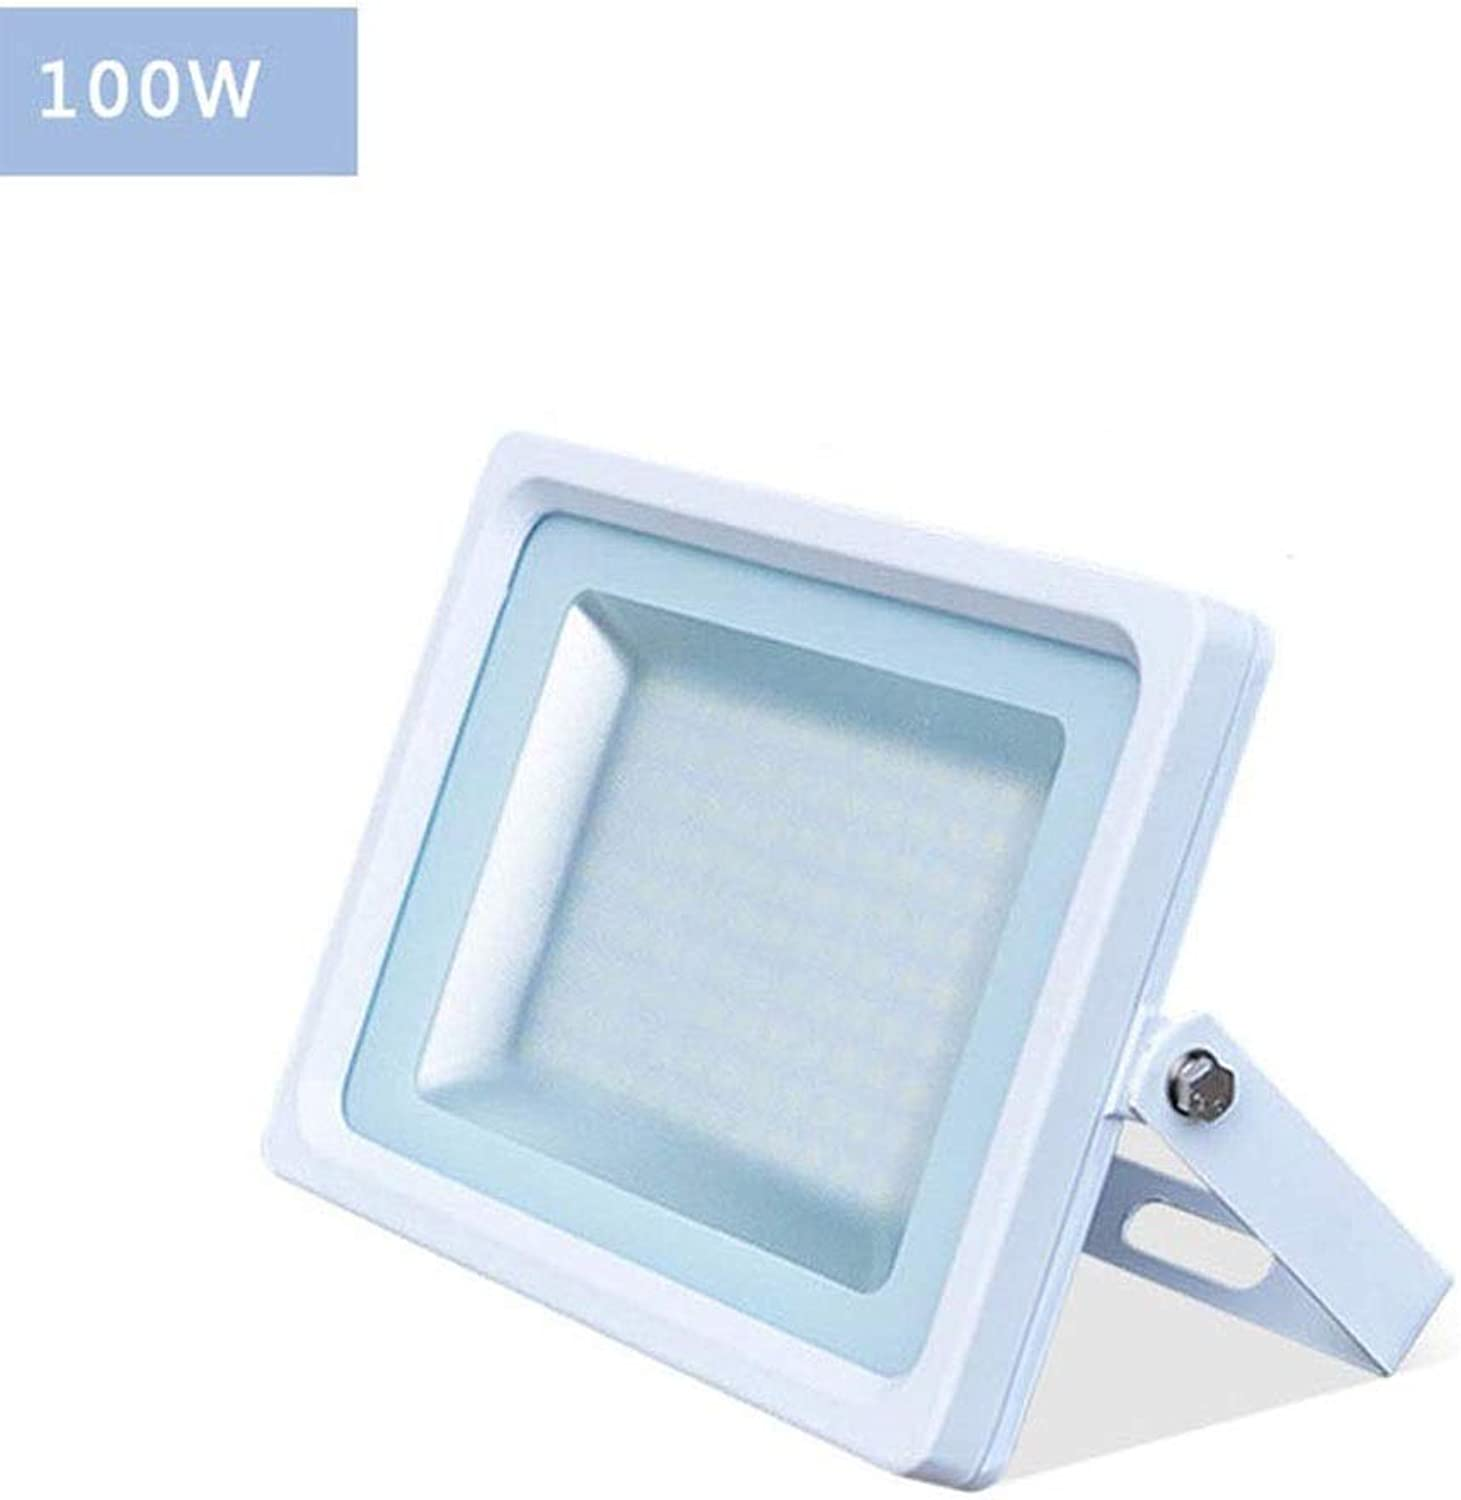 HDZWW Outdoor Adgreenising Projection Light Construction Site Waterproof Safety Lamp LED IP66 Waterproof Outdoor Security Light,Outdoor Wall Light for Yard,Garage,Warehouse,Parking Lot,Garden[Energy Cl